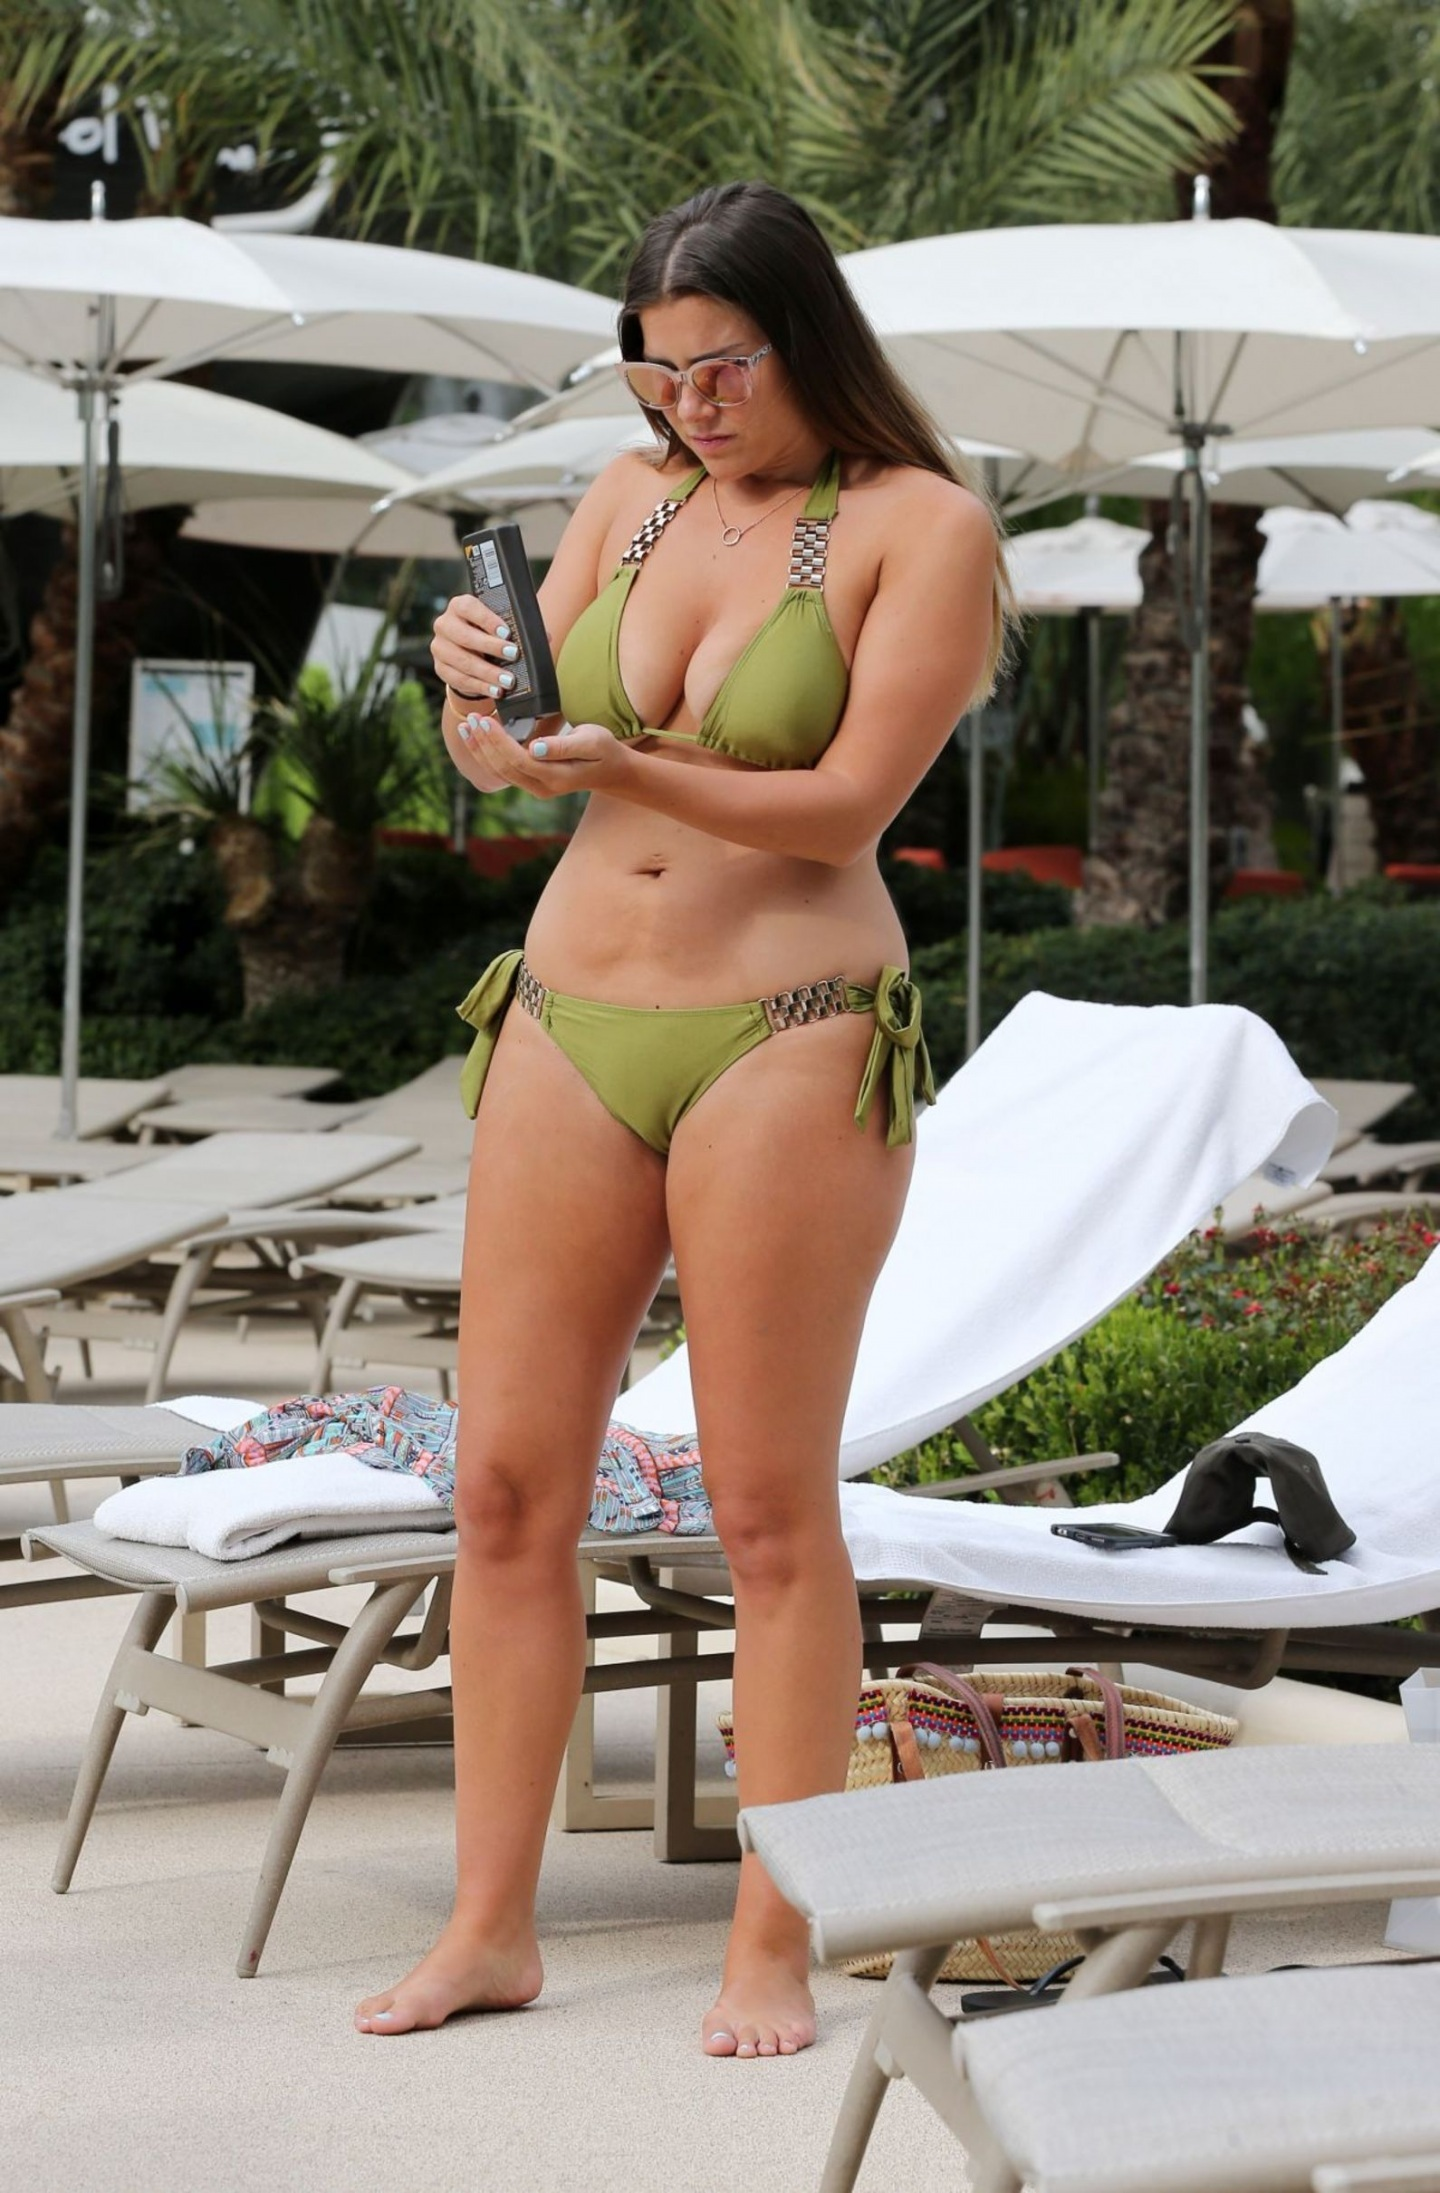 Imogen Thomas In Bikini At Pool In Las Vegas Imogen Thomas